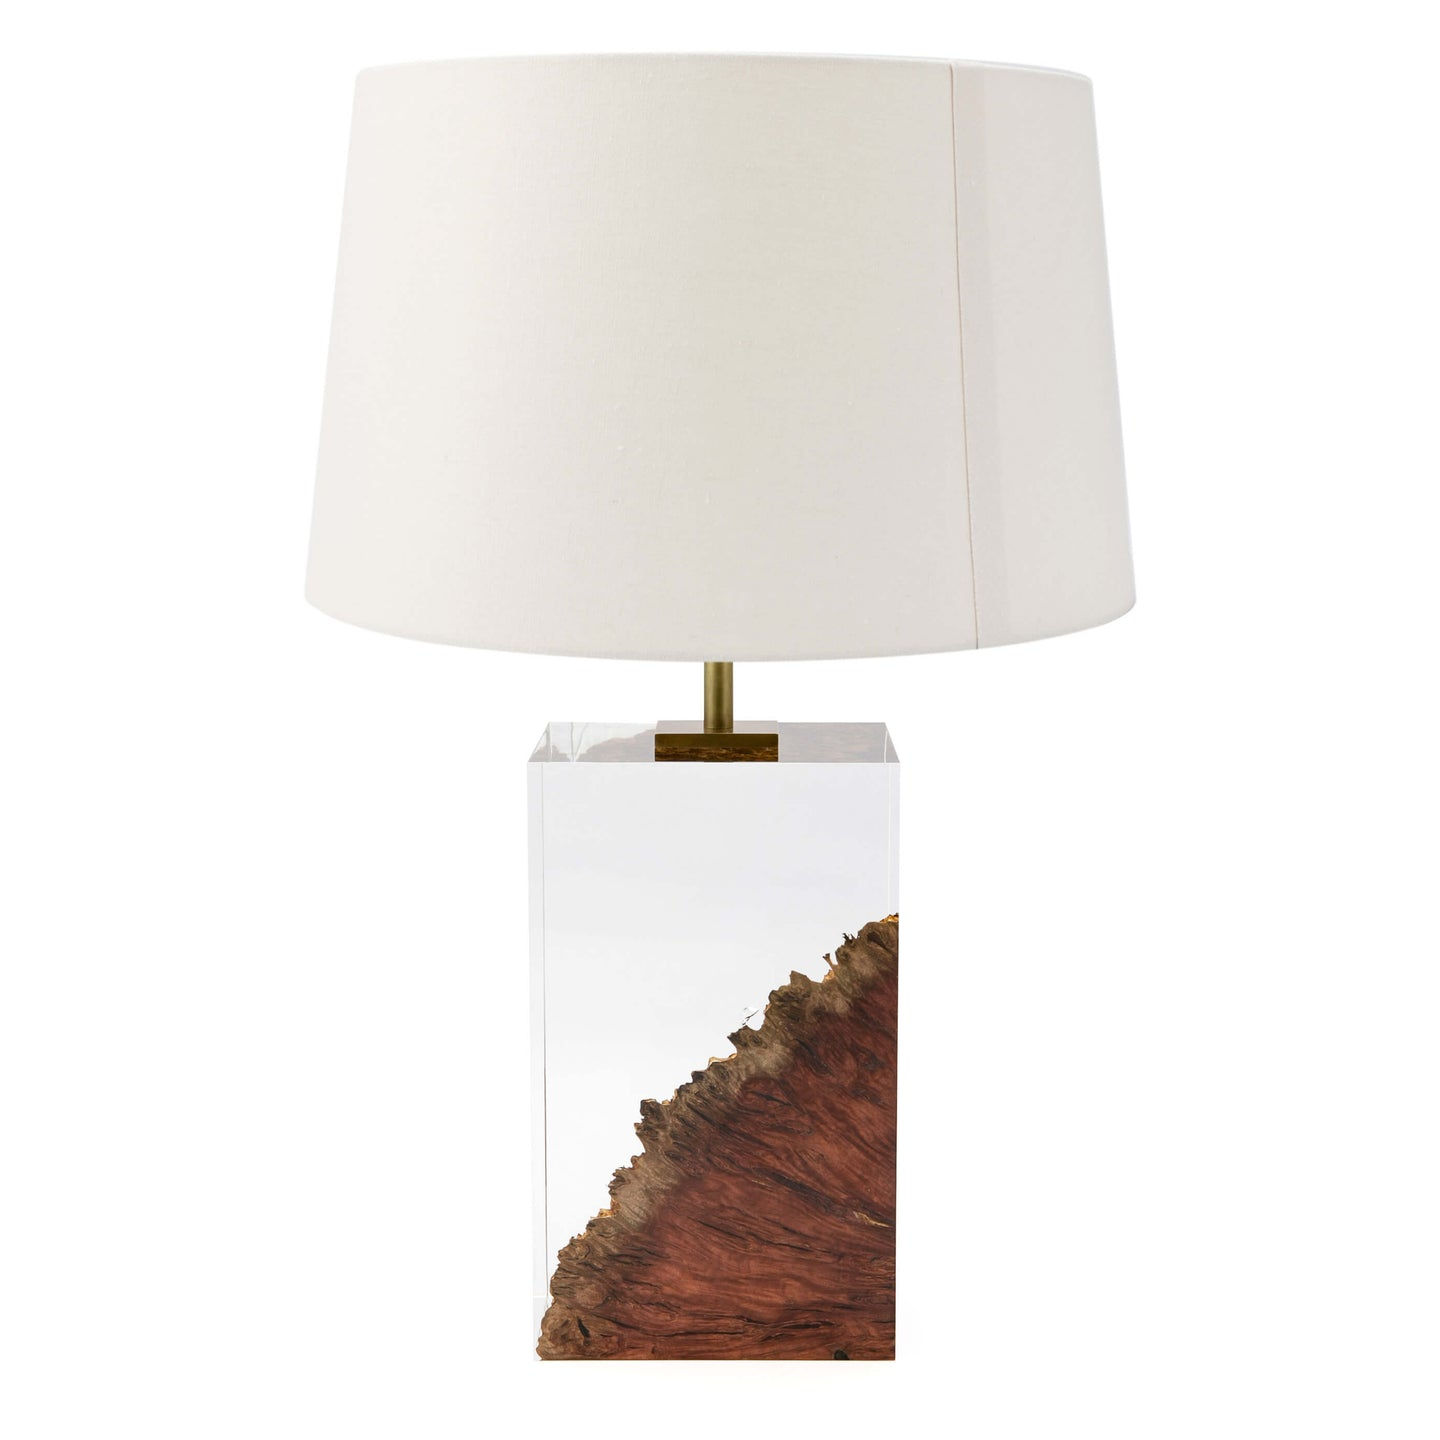 Jarrah wood and acrylic table lamp made in UK by Iluka London for AUTHOR Interiors